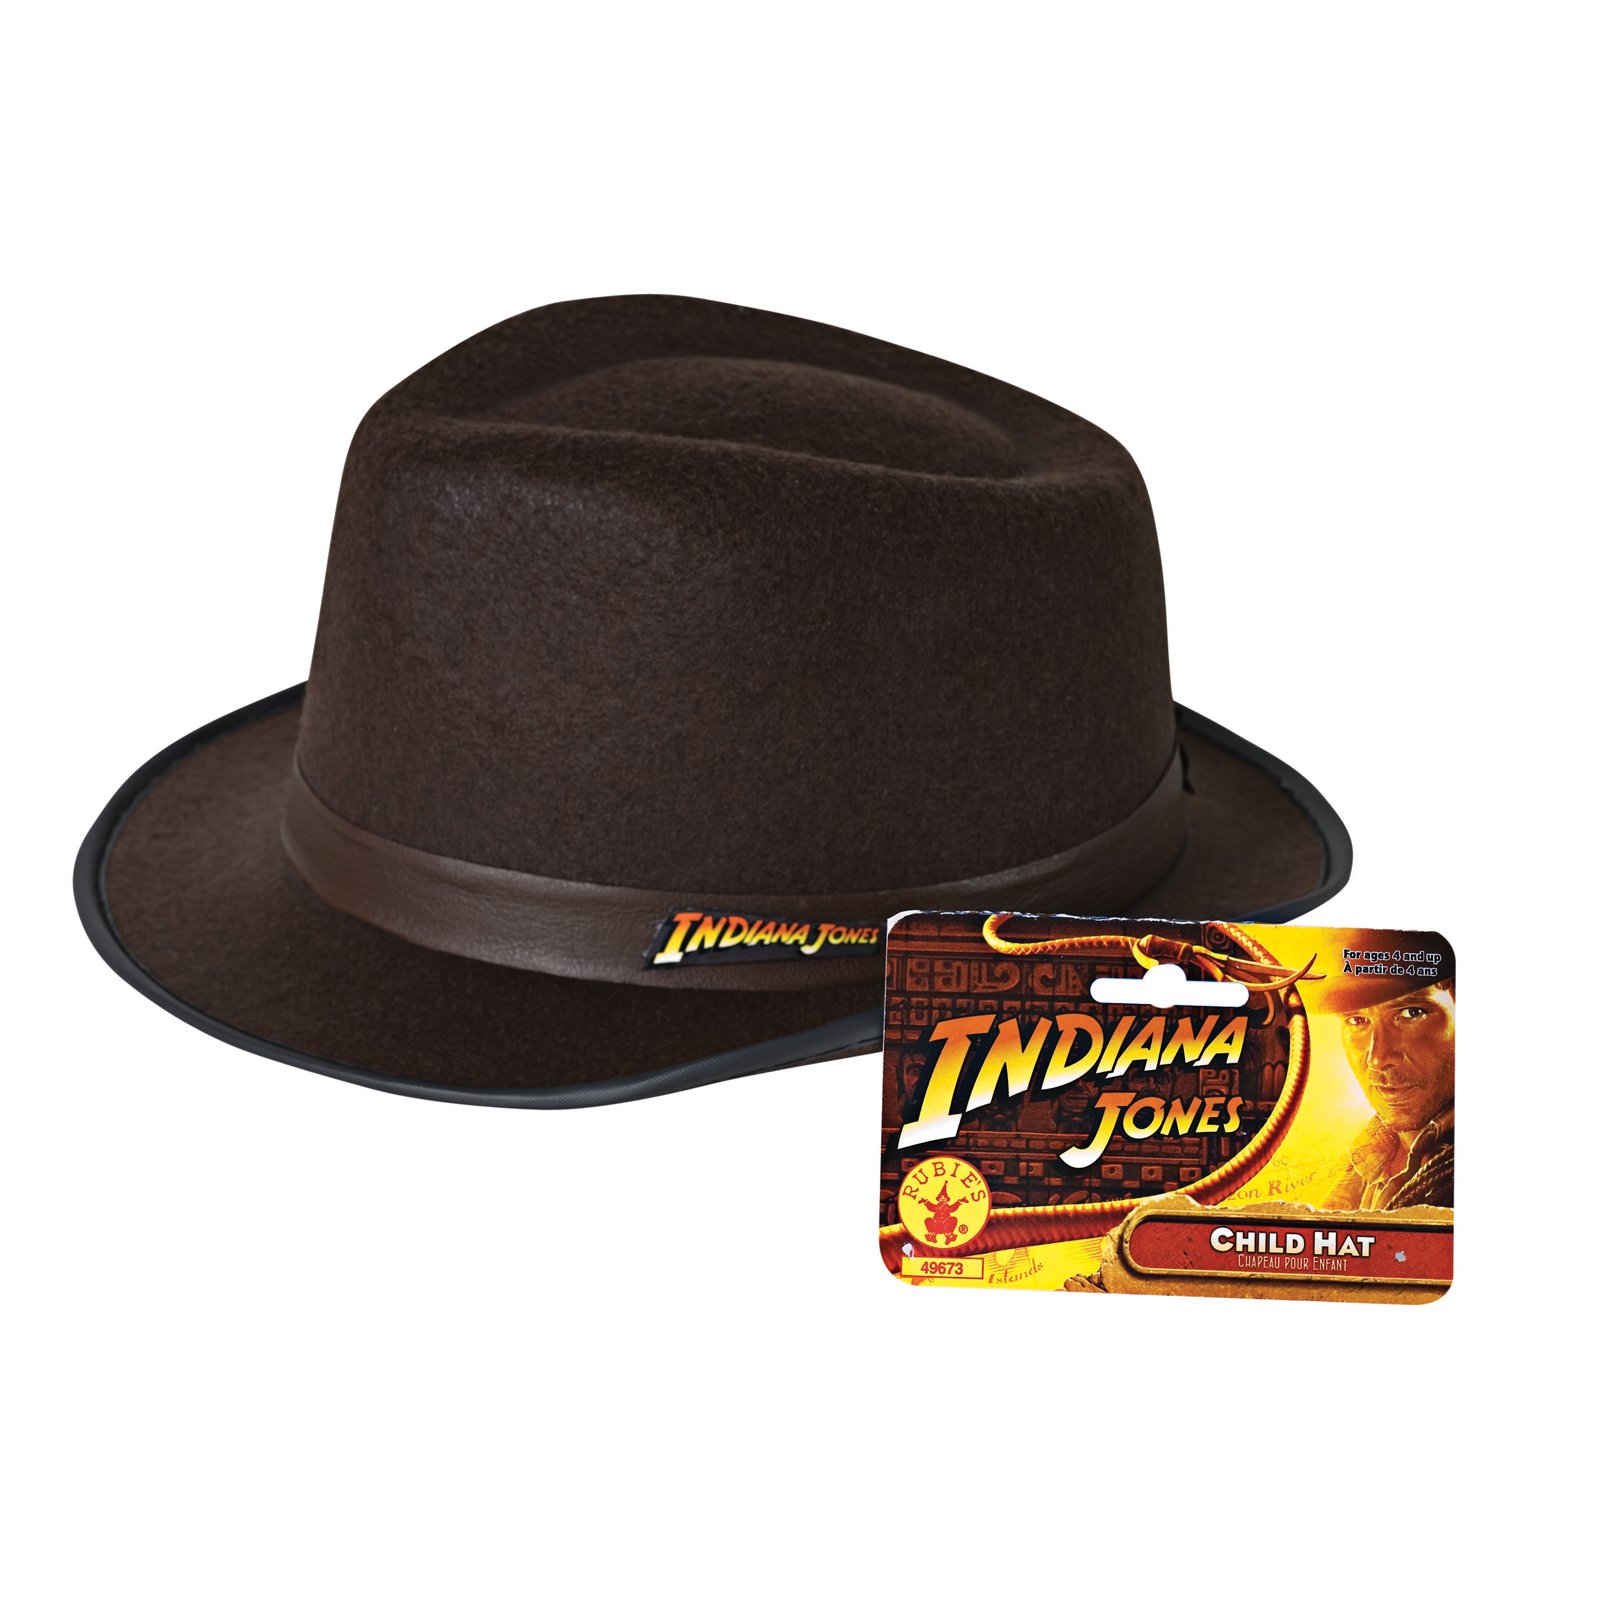 Indiana Jones Economy Hat Child